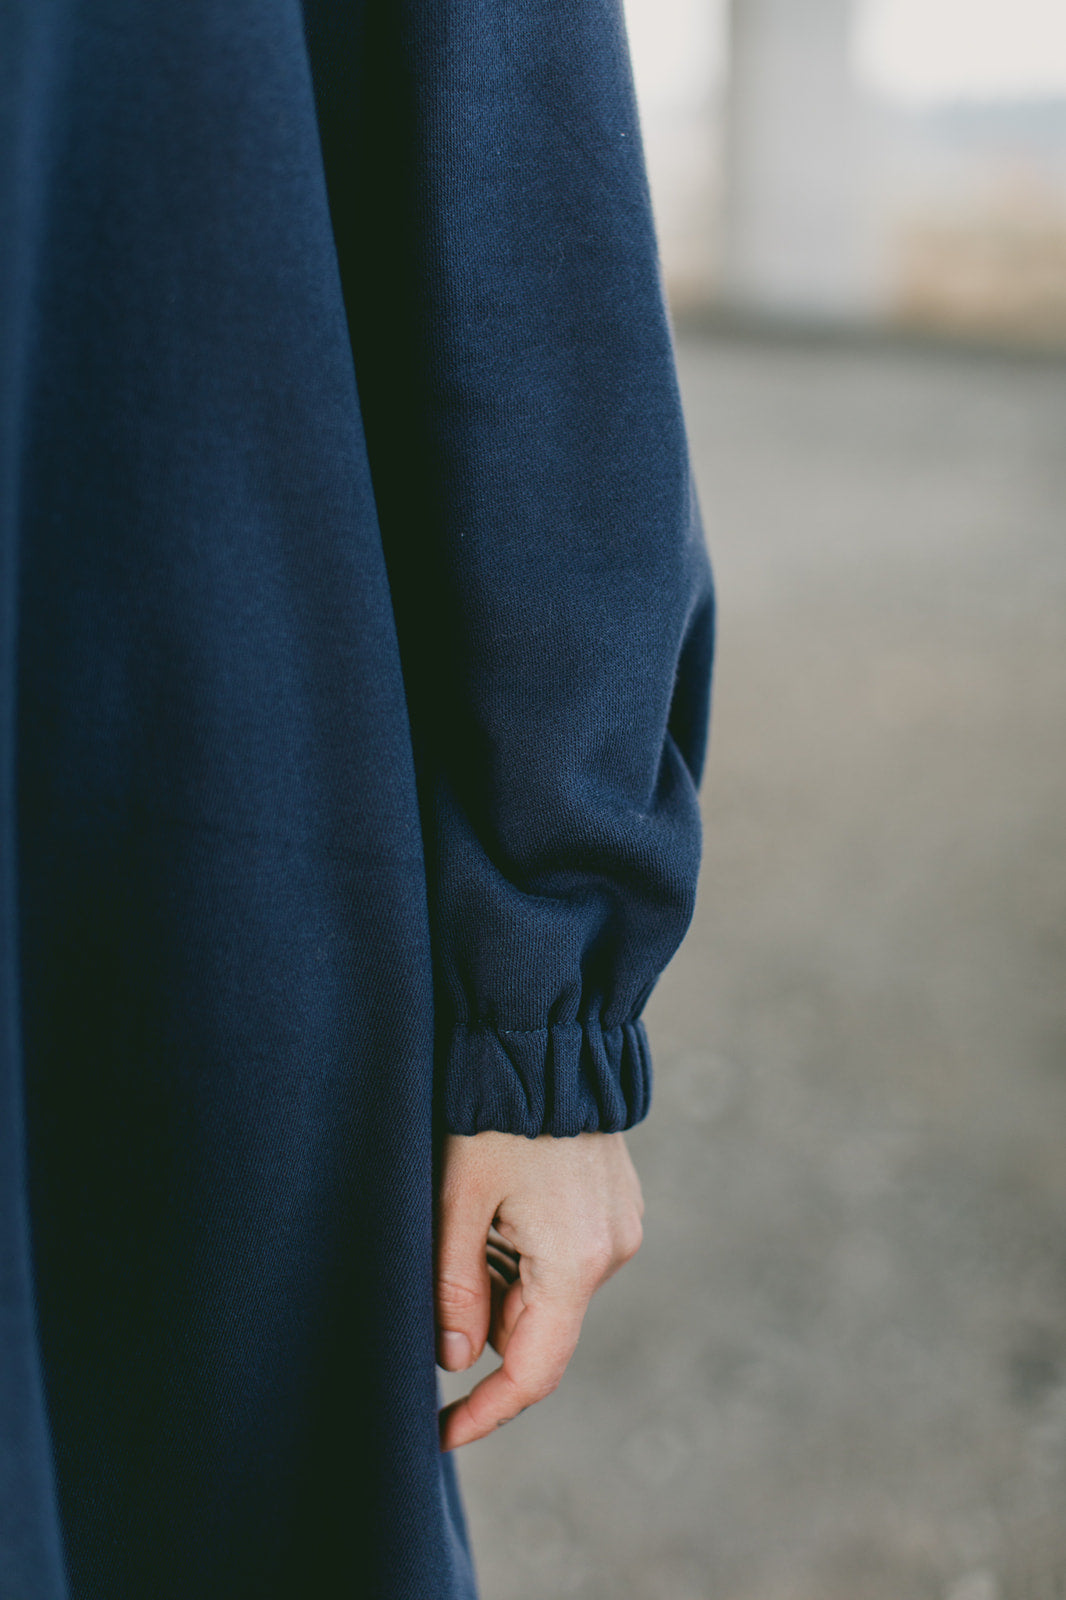 SAMPLE SALE: THE POOF SWEATSHIRT DRESS